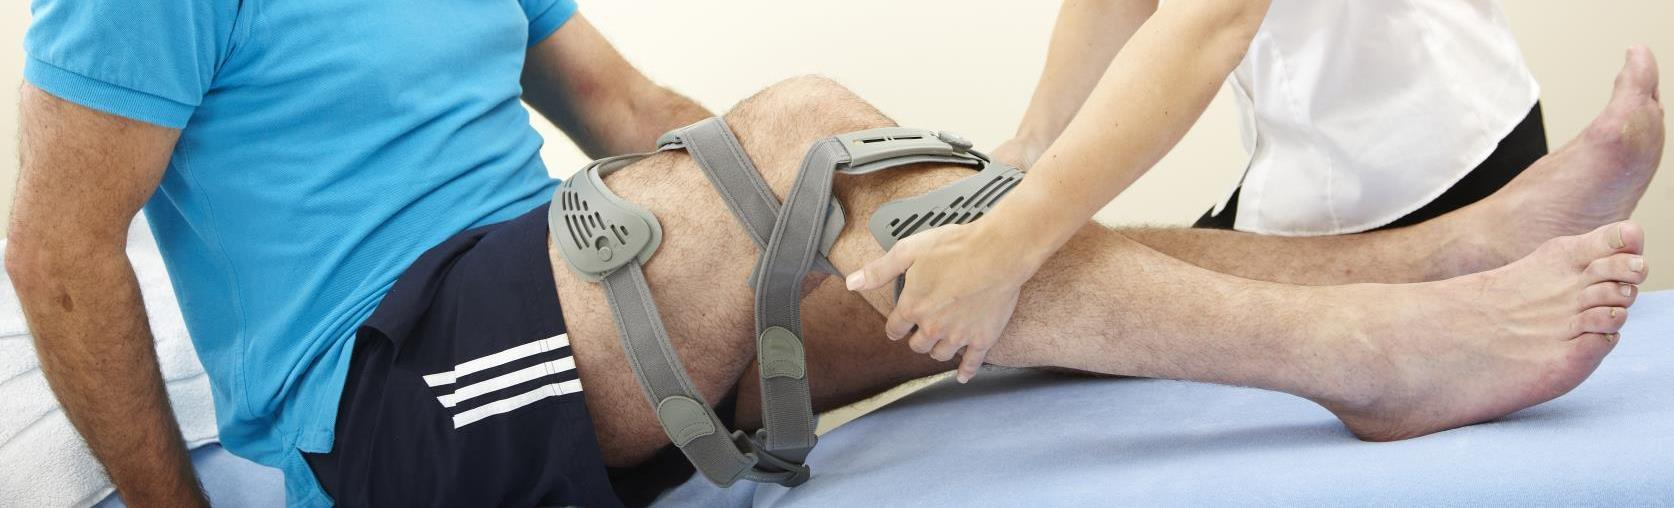 Knee Braces - OA Knee Pain